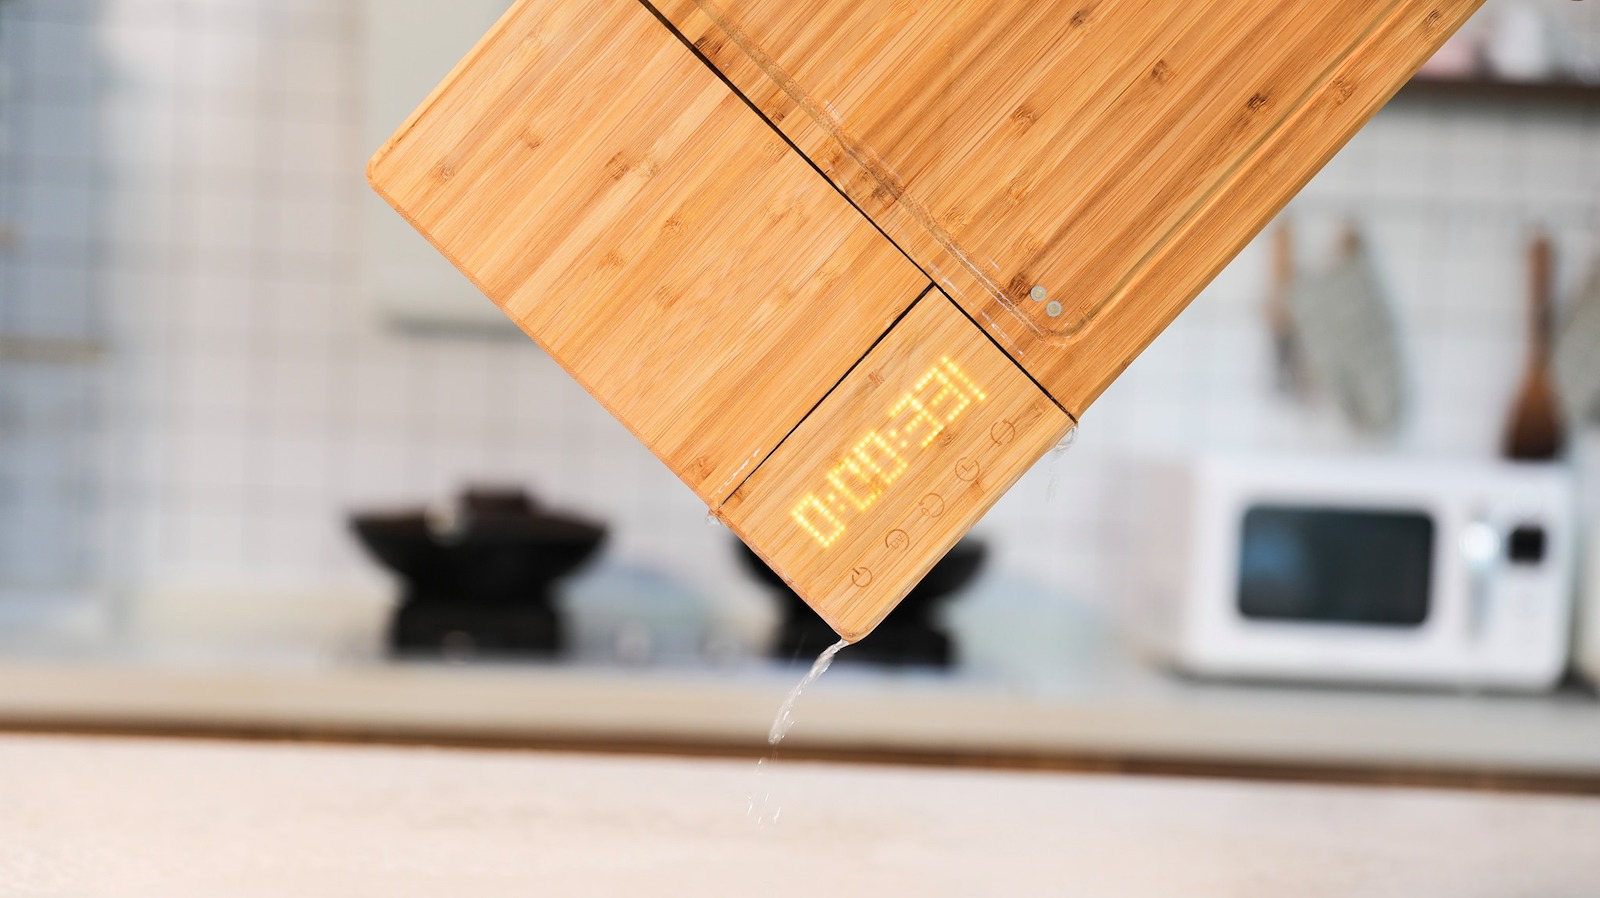 The Yes Company ChopBox smart cutting board features a UV-C light to kill germs & bacteria